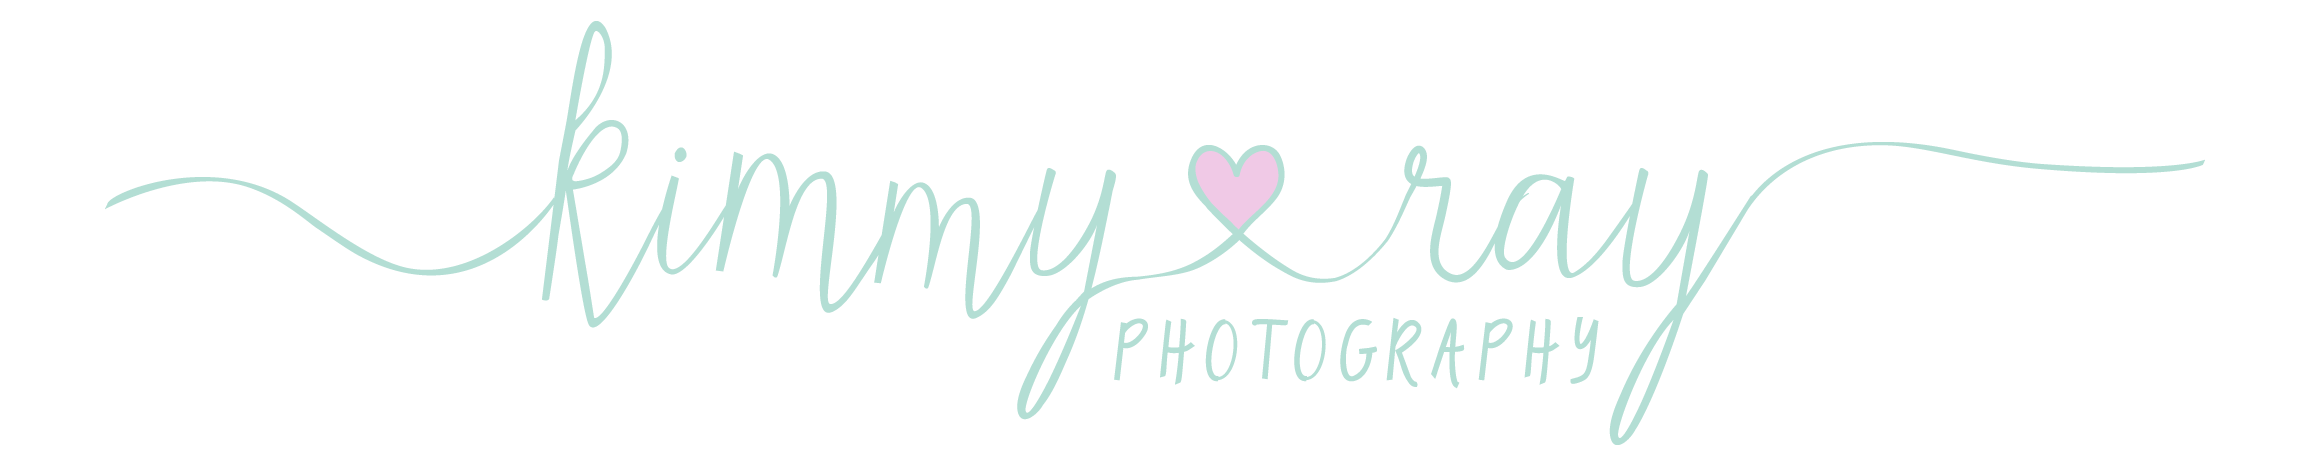 Kimmy Ray Photography brings your event, special occasion, and important memories to life for eternity